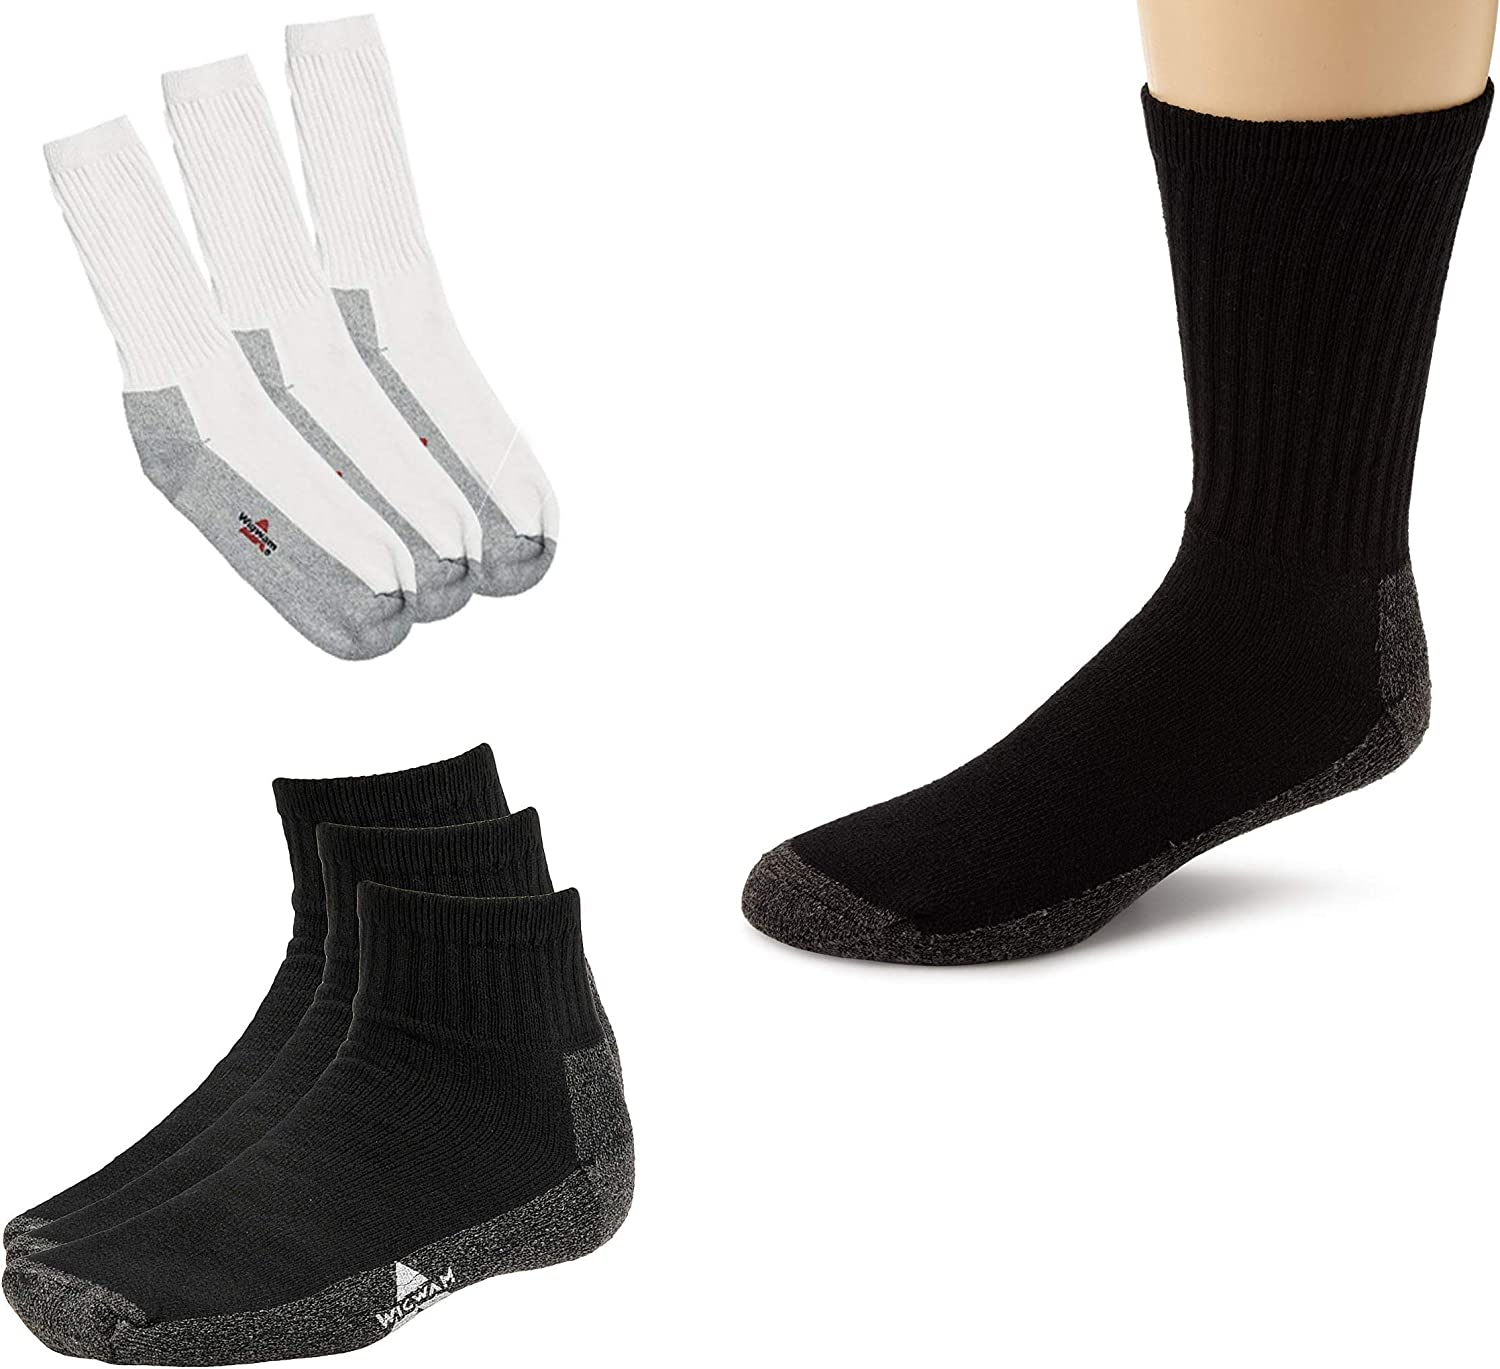 Wigwam Cotton Blend Cushioned Crew Grey and Black with 3Pack Crew Socks Black